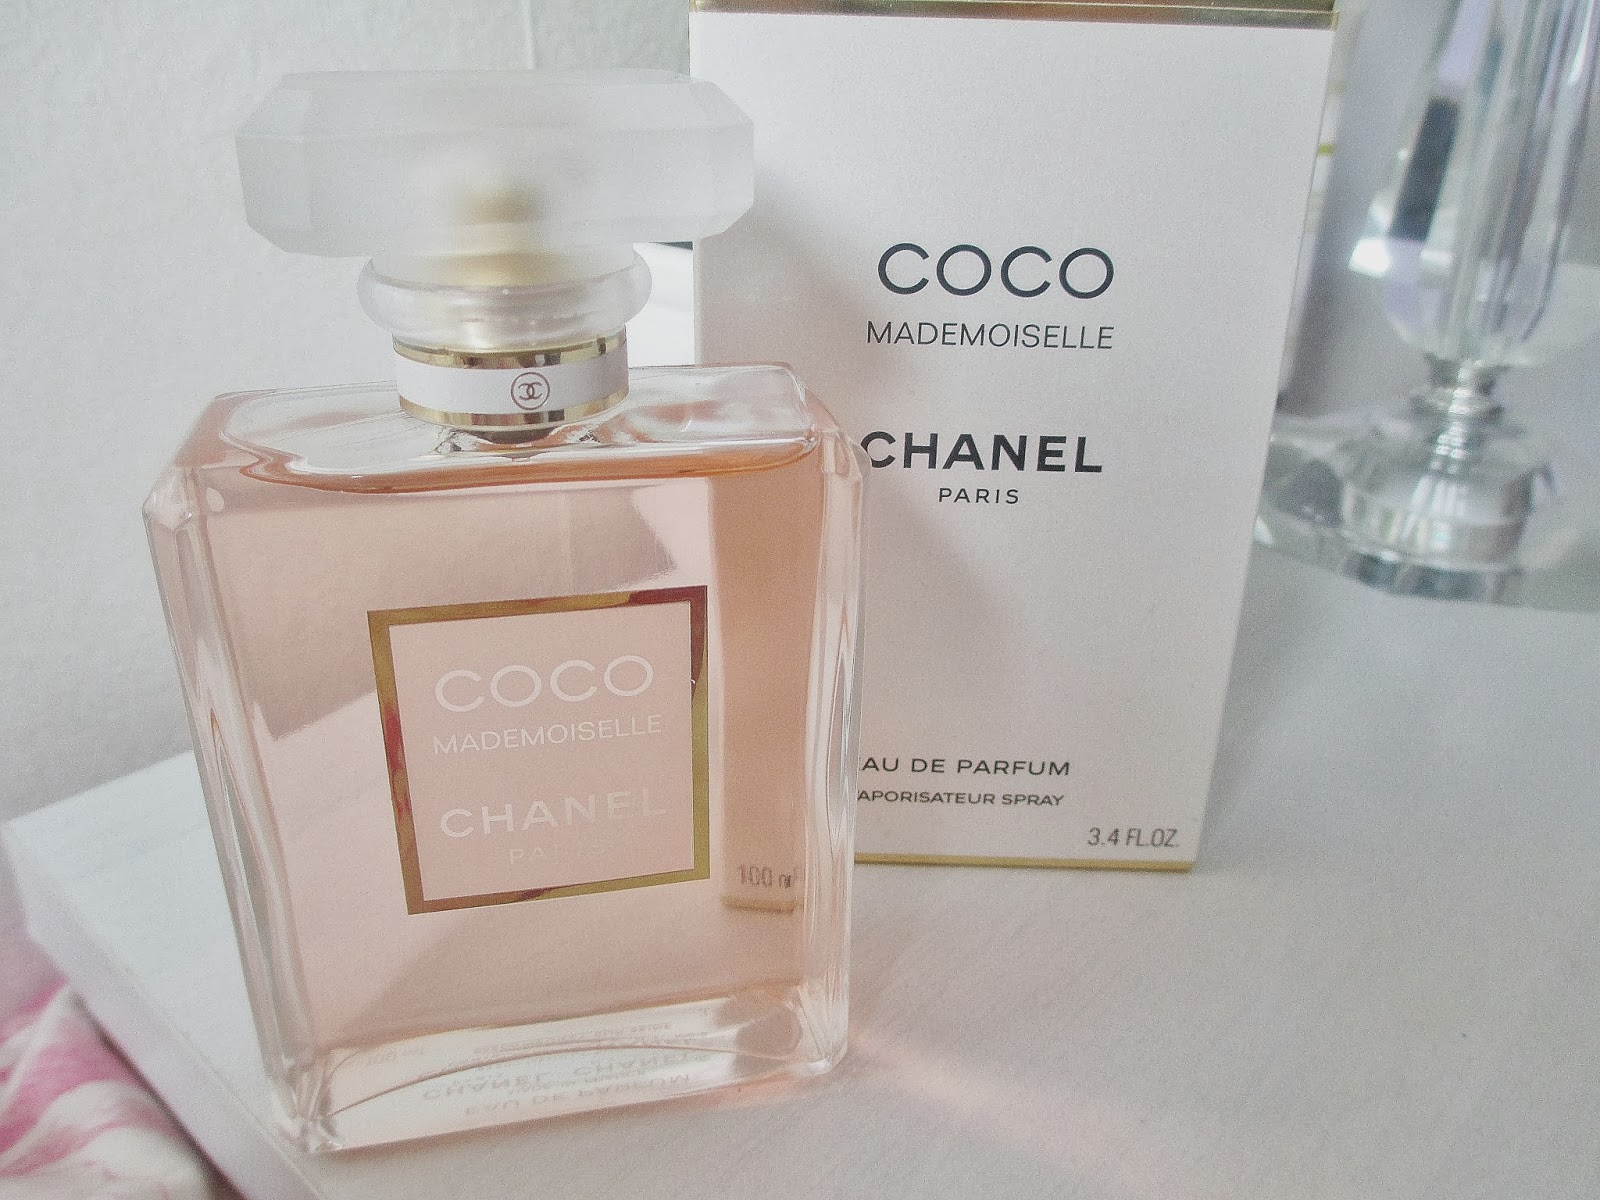 Chanel Coco Mademoiselle & Free Sample Box | drainedbeauty